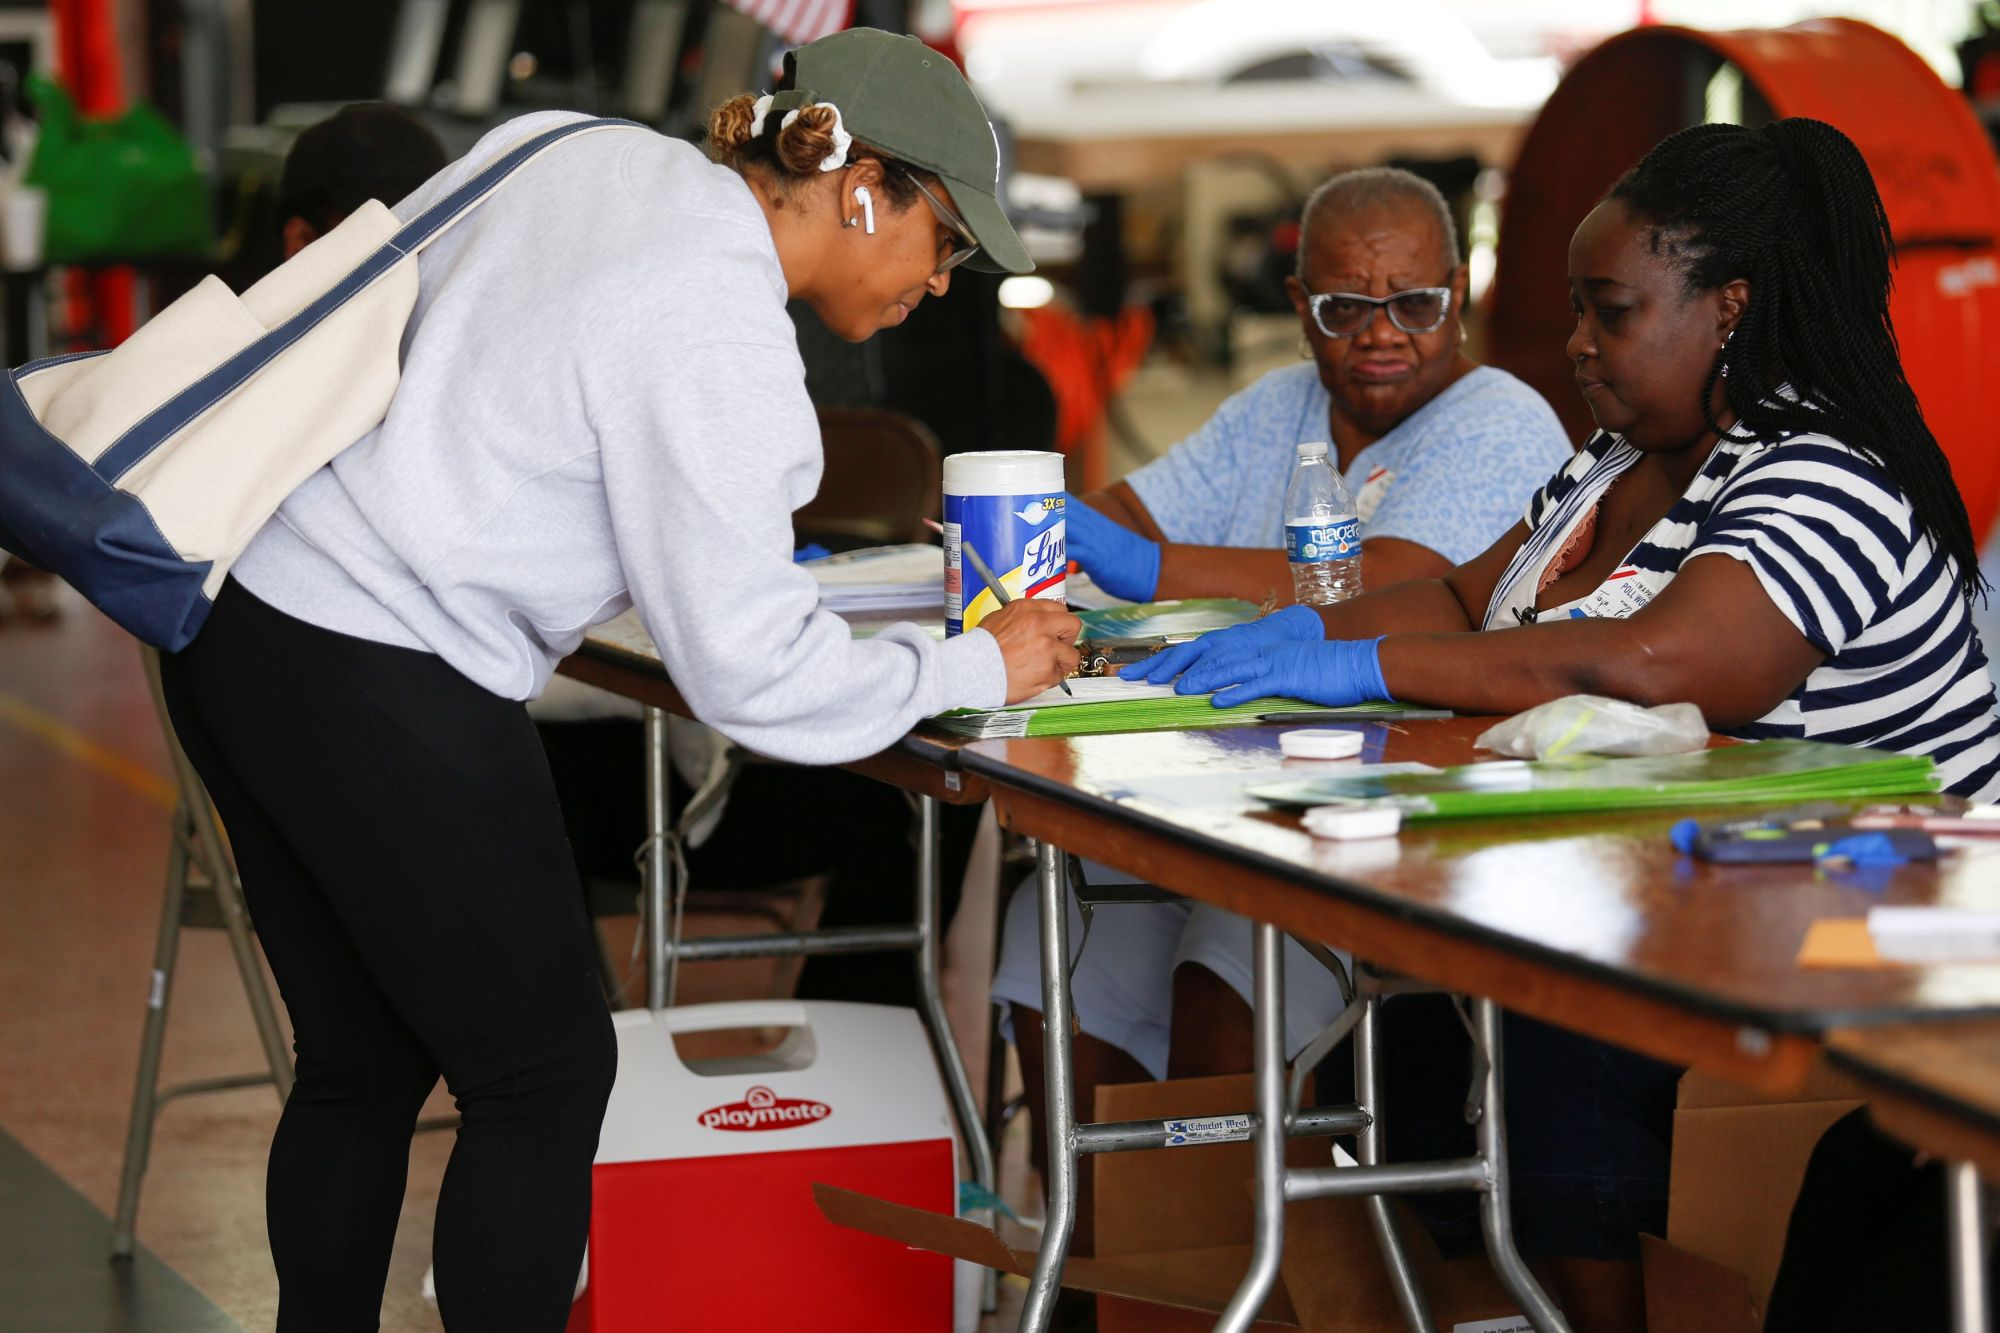 A voter signs her ballot before casting her vote at a polling center during the Democratic presidential primary election in Miami on Tuesday. | REUTERS